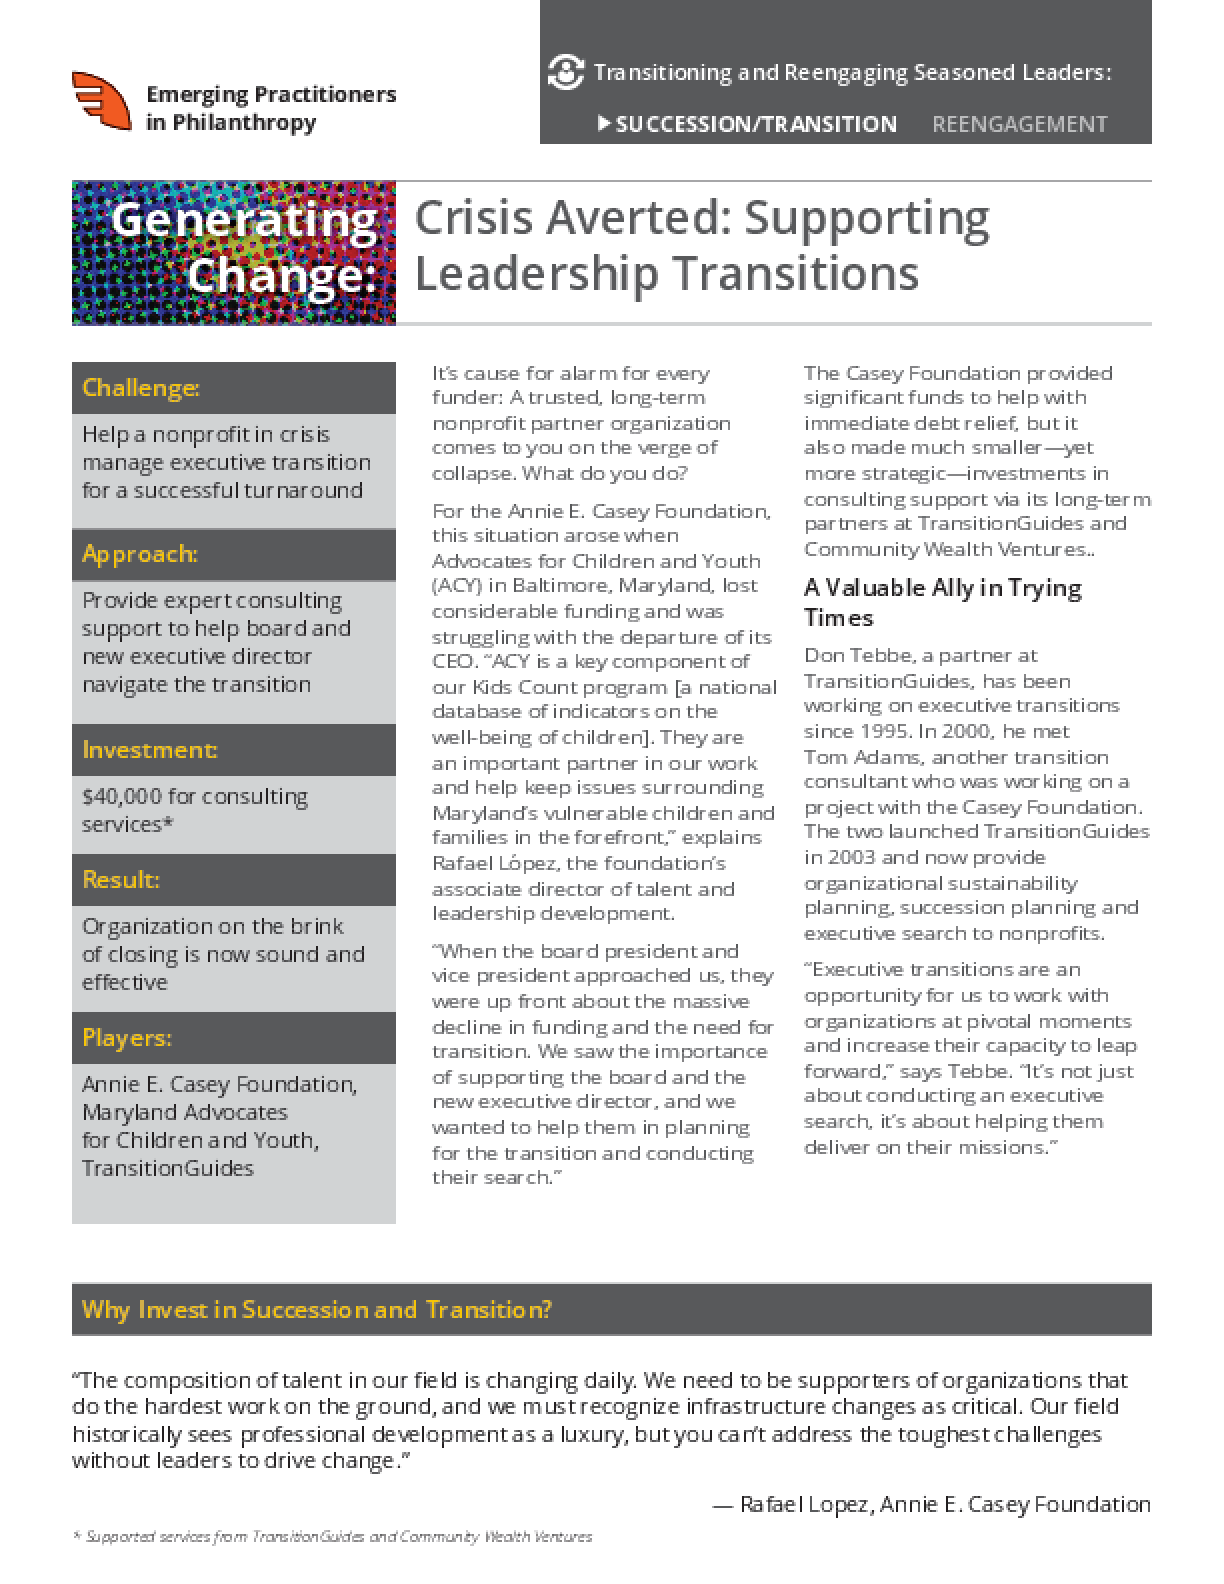 Generating Change: Crisis Averted: Supporting Leadership Transitions